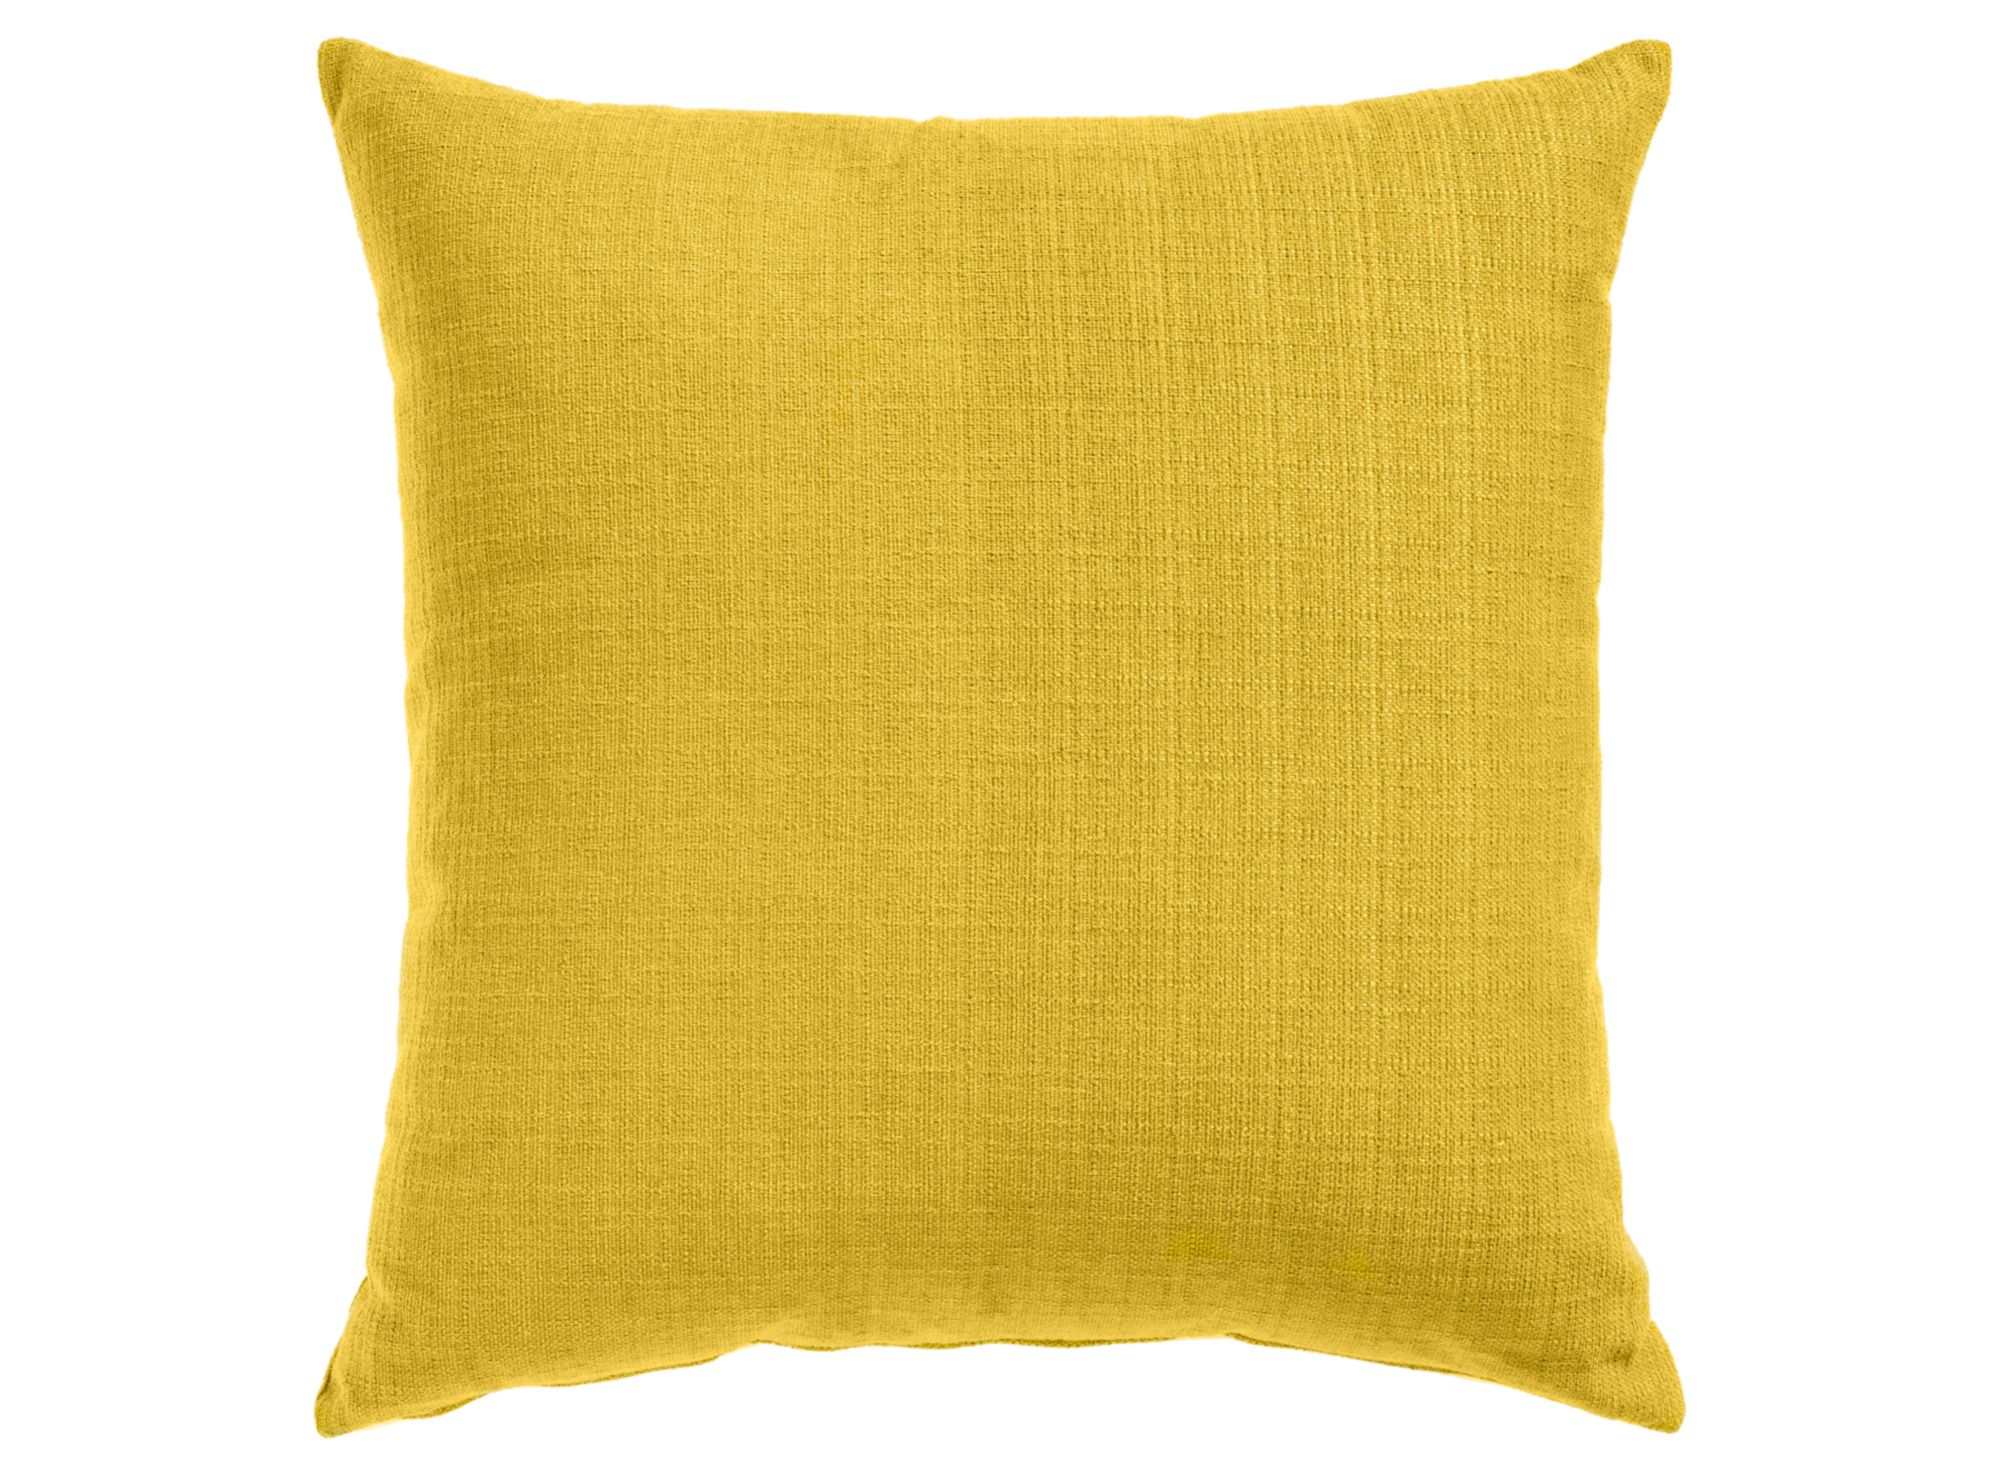 Coussin 60x60 Jaune Fly Coussin 60x60 Coussin Jaune